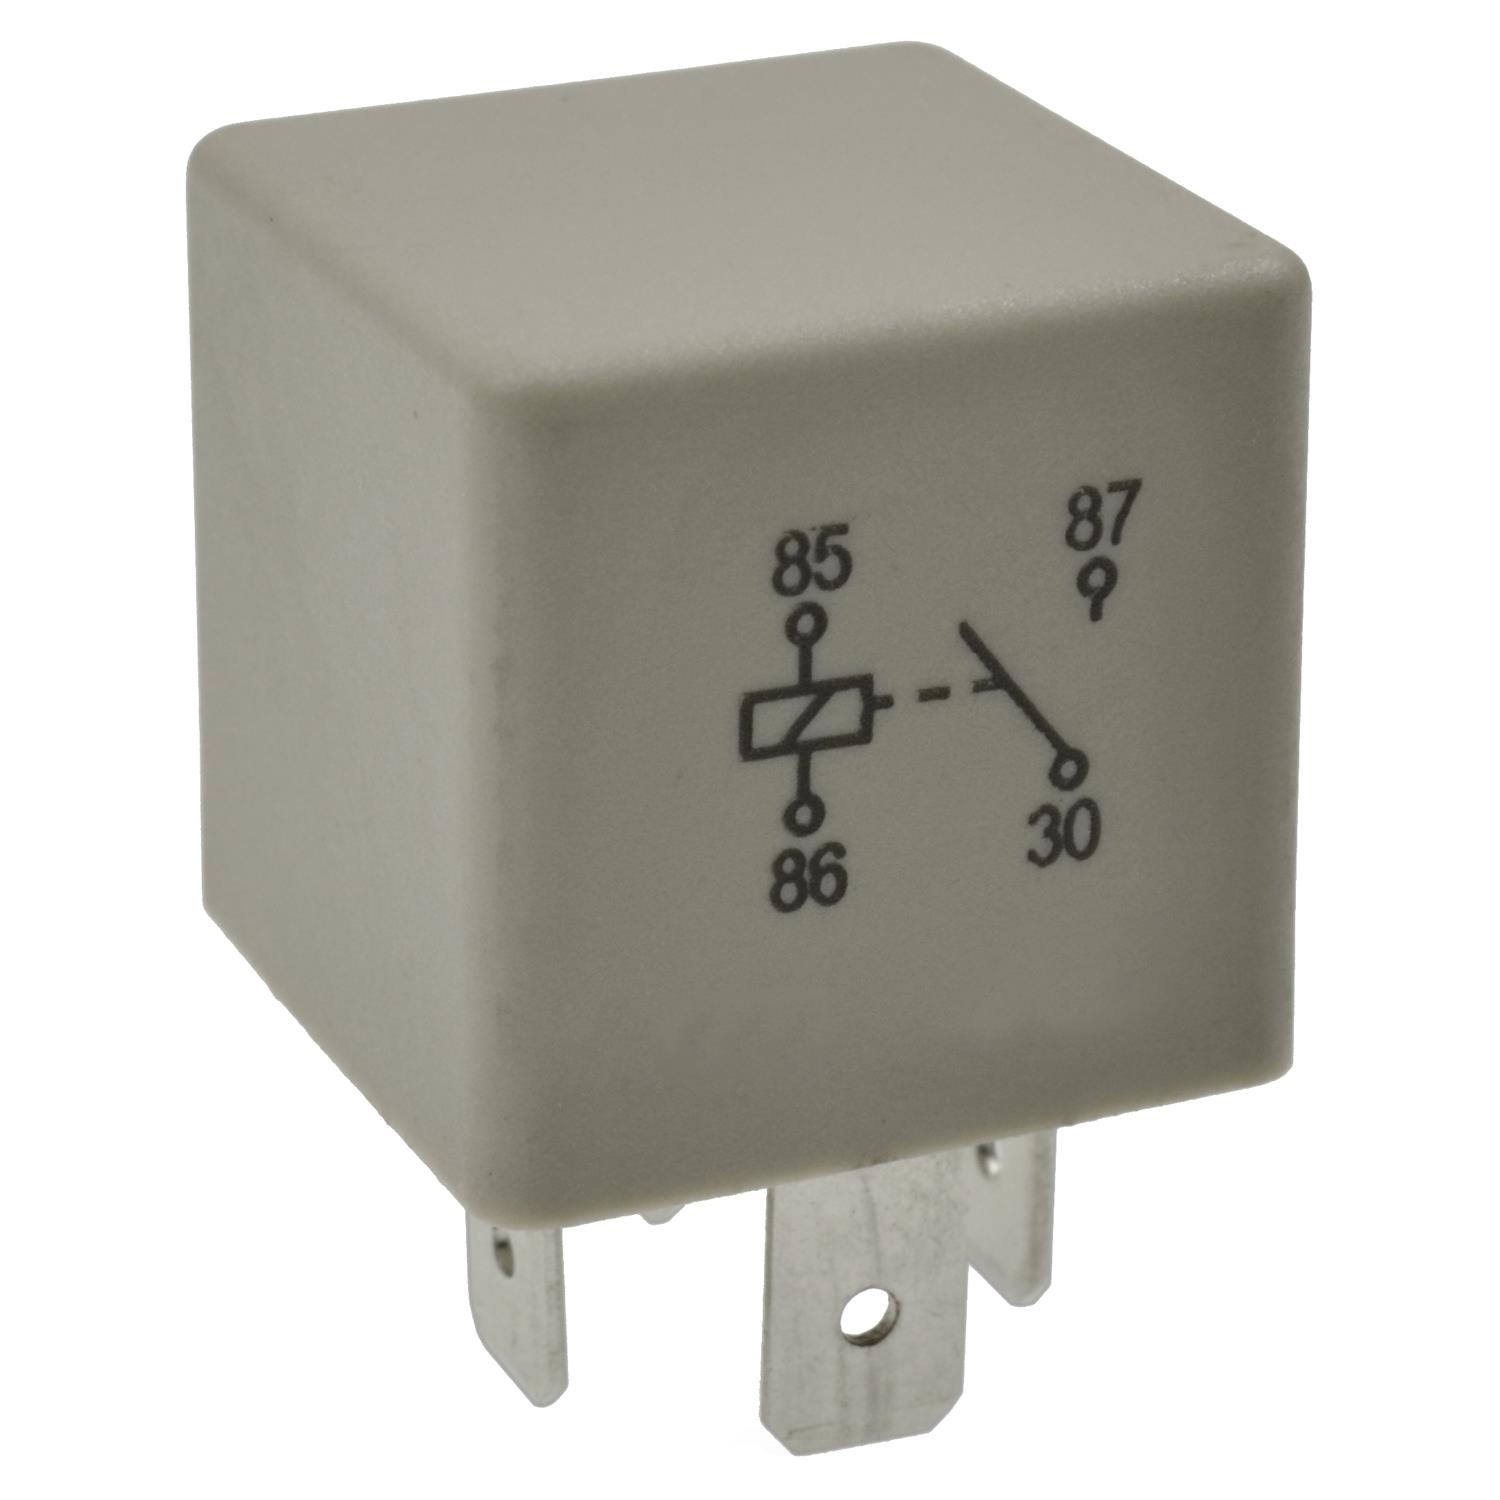 STANDARD T-SERIES - Rear Window Defroster Relay - STT RY265T